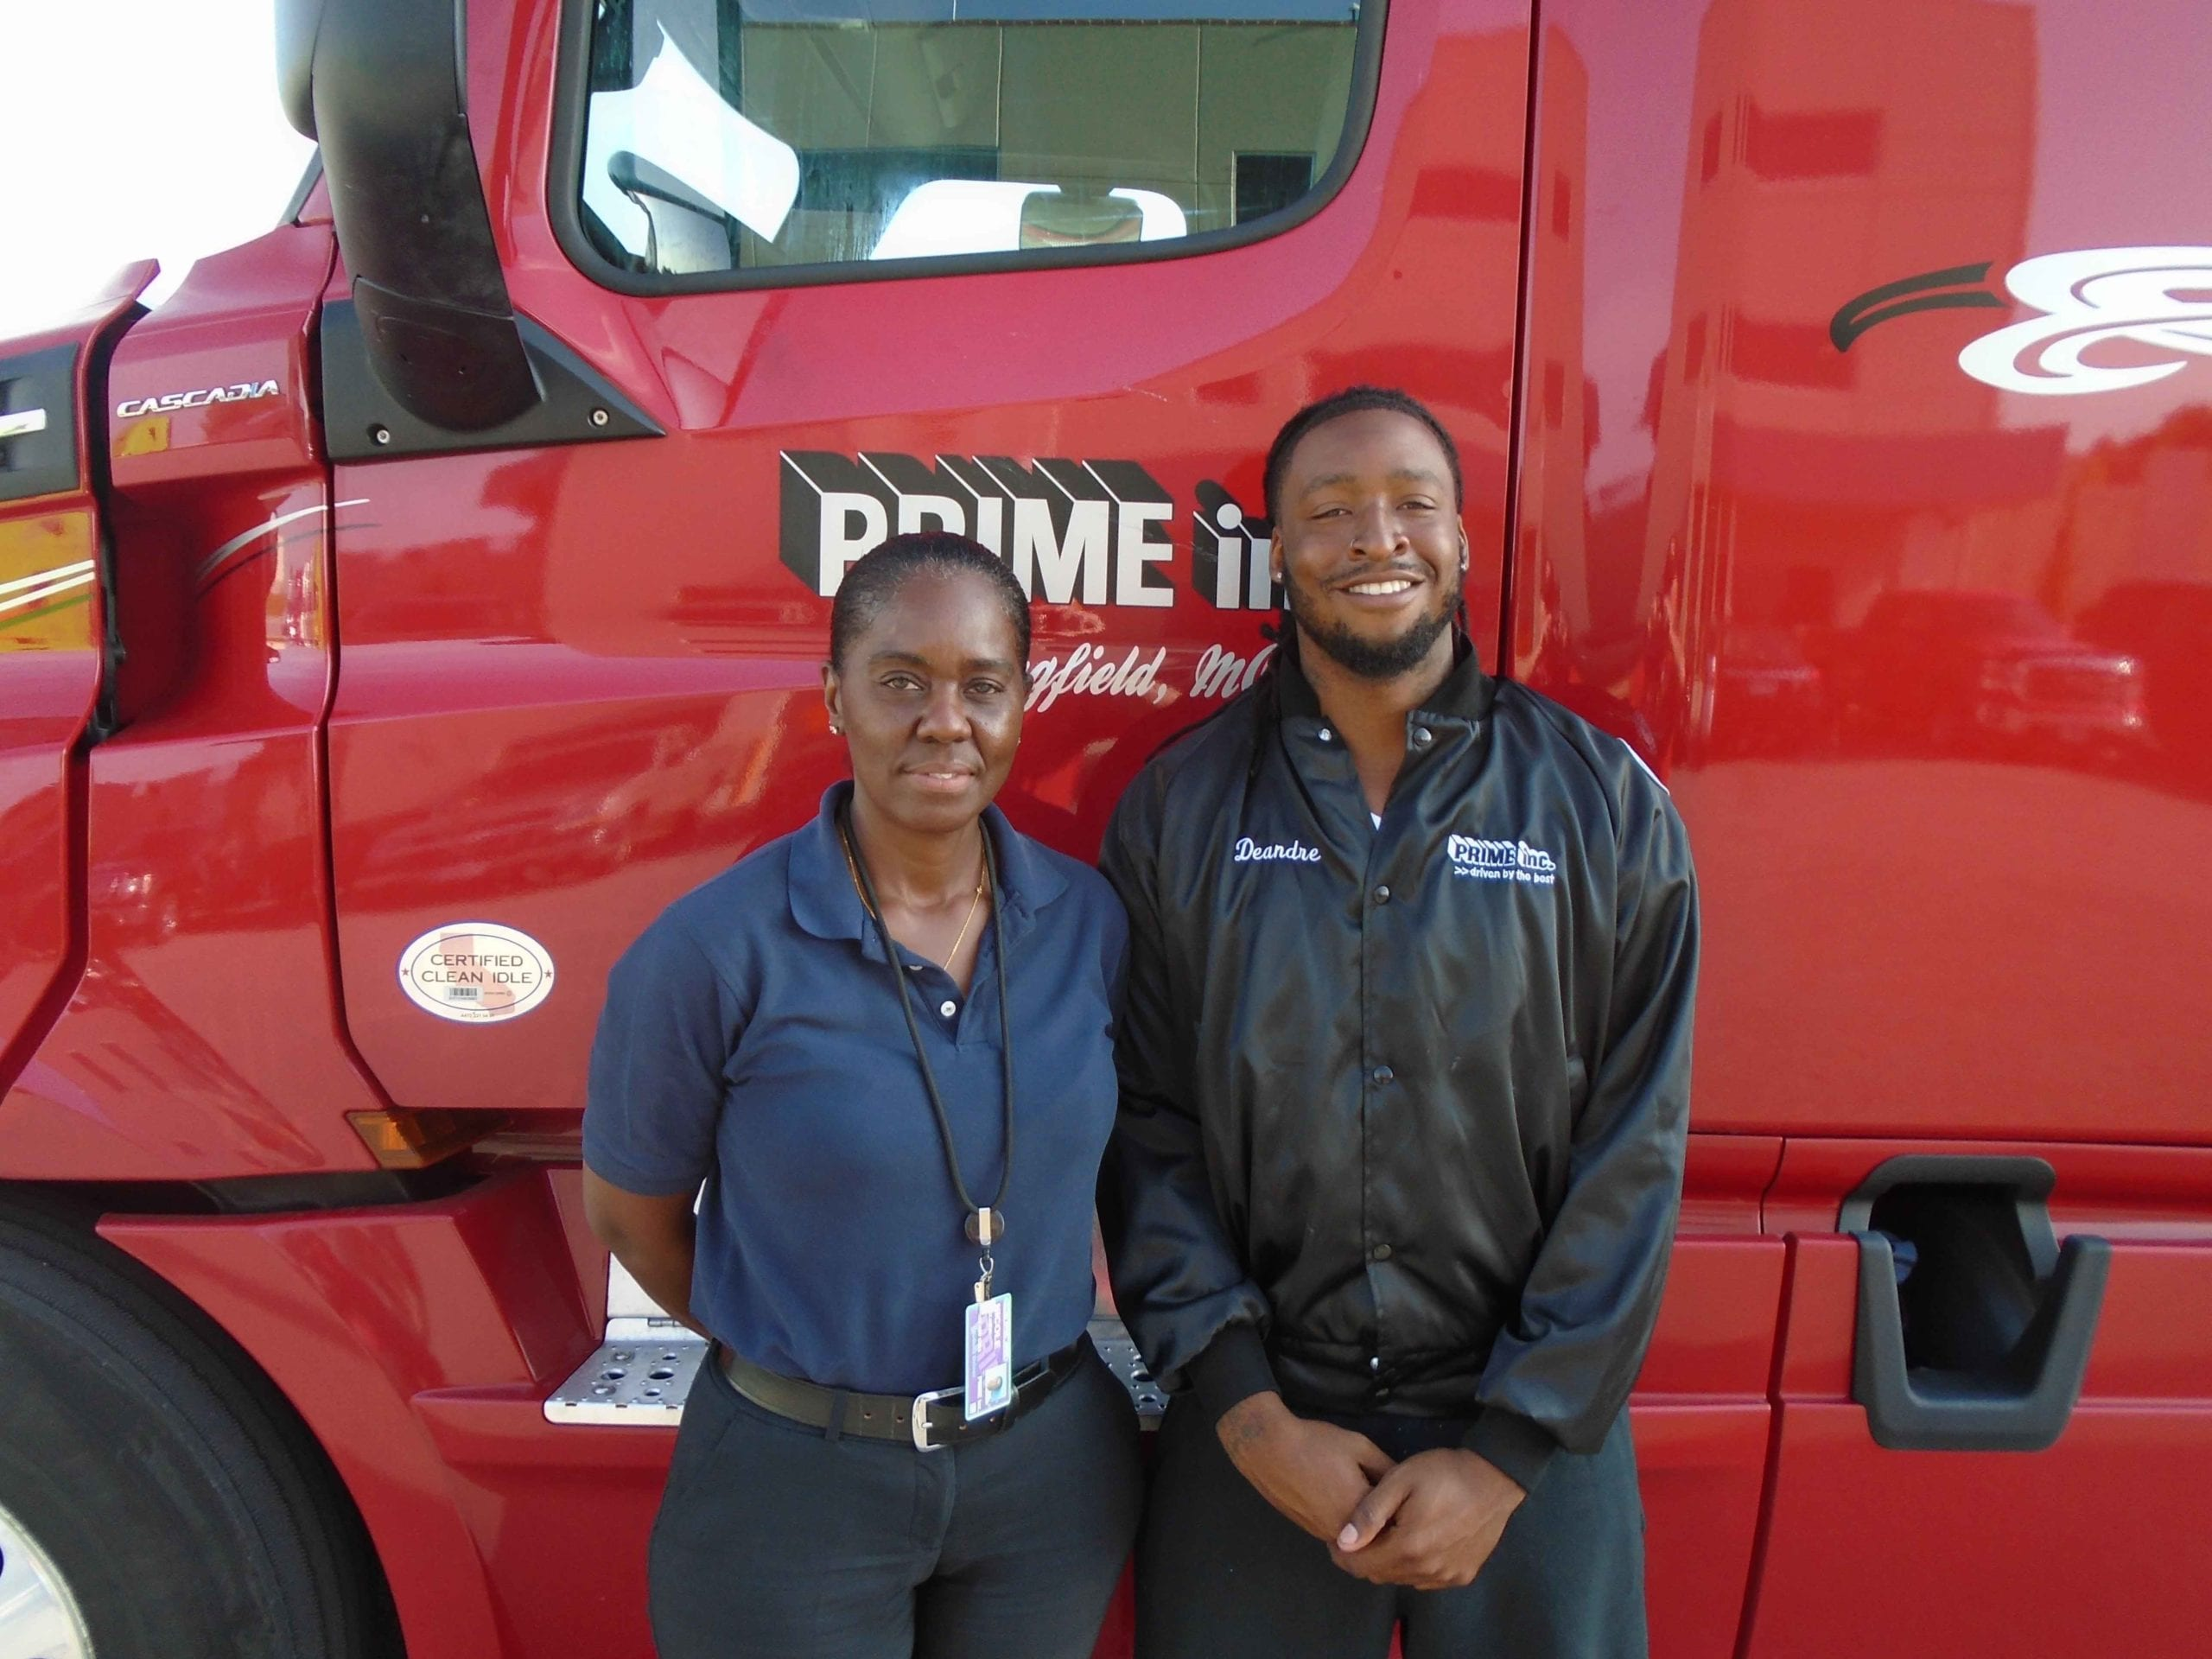 Deandre, a Prime student truck driver. standing with his instructor in front of a red semi-truck.